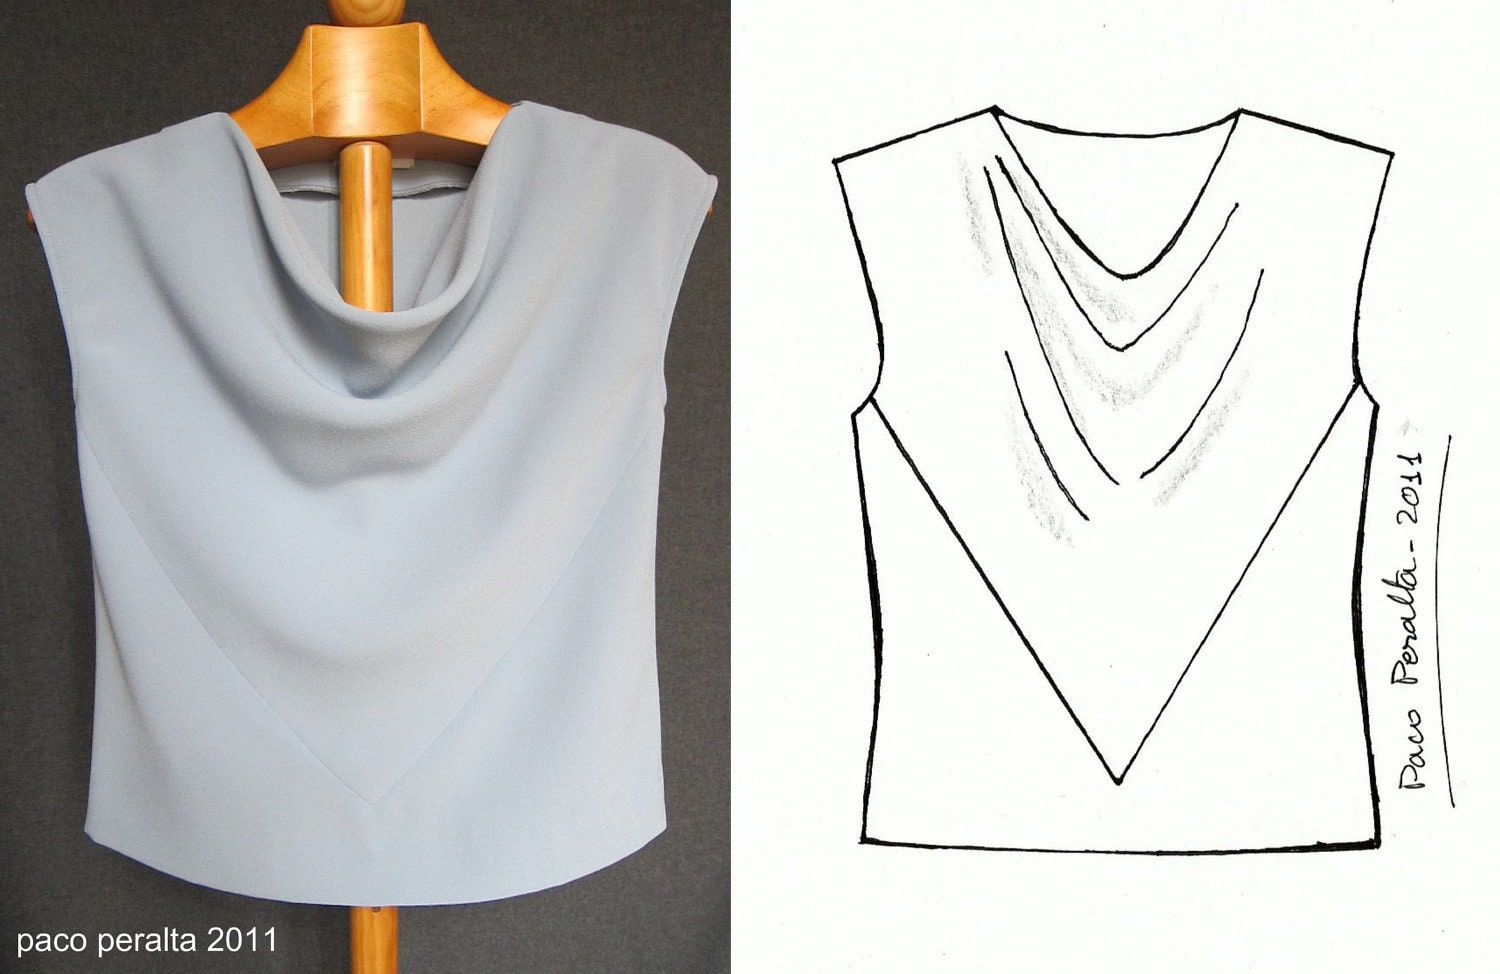 Draped top from Paco Peralta